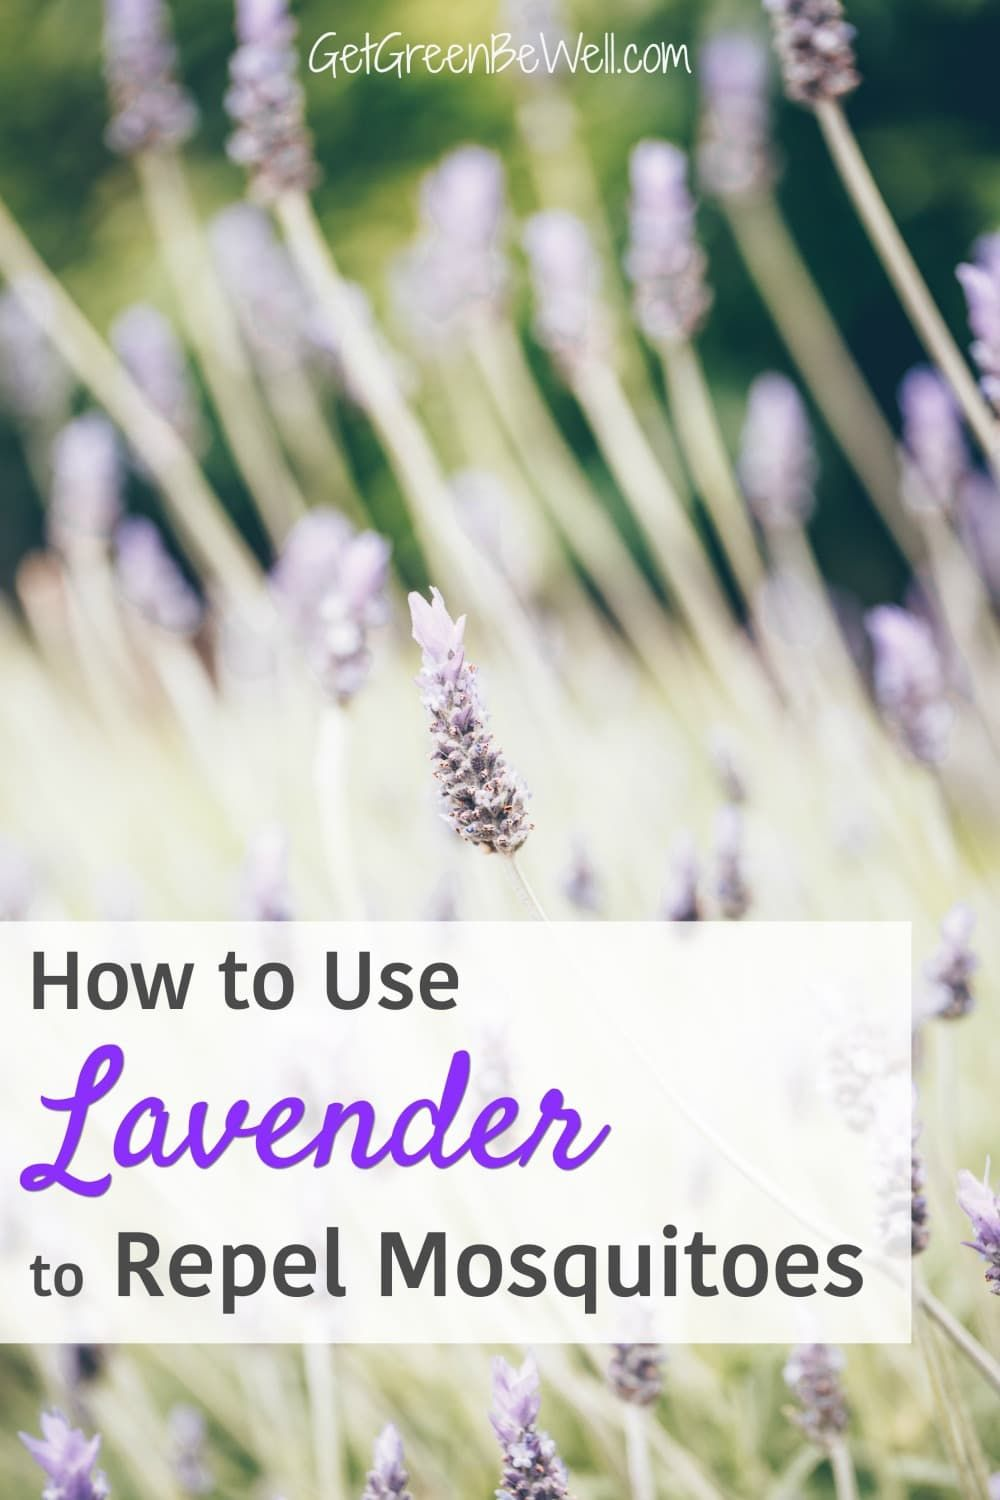 Does Lavender Repel Mosquitoes? Get Green Be Well in